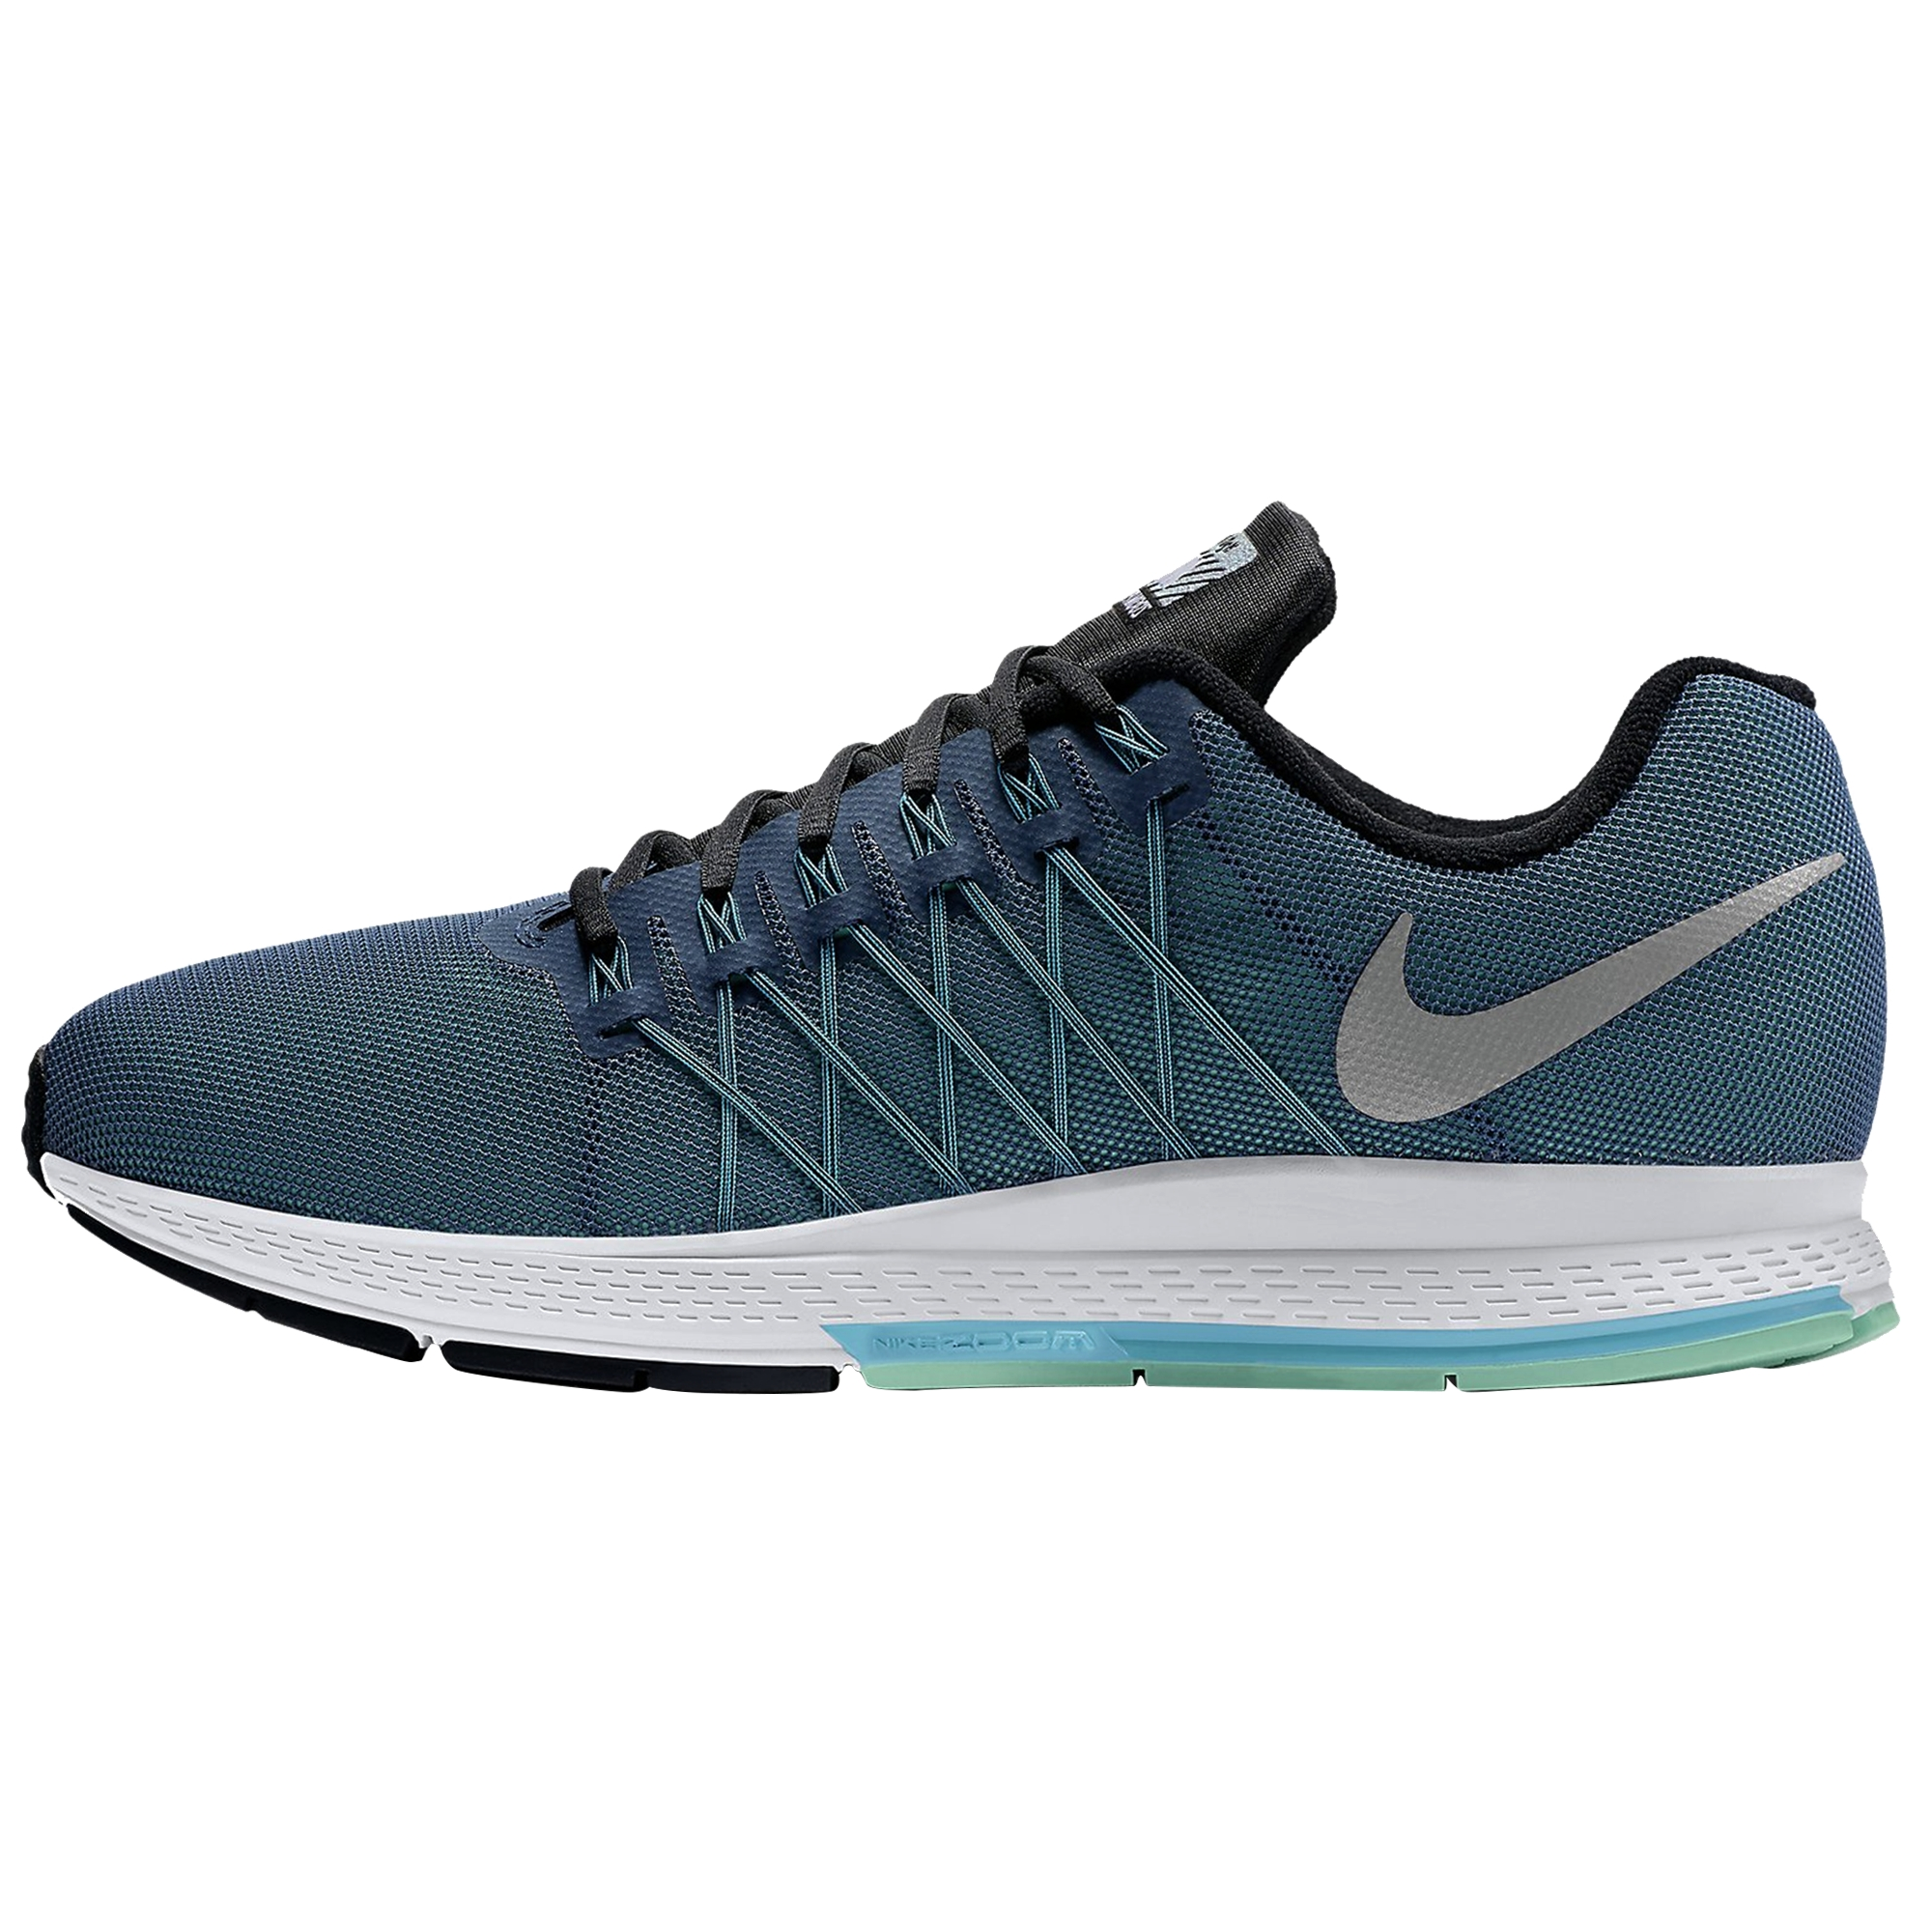 wholesale dealer 97b32 95027 Nike Air Zoom Pegasus 32 Flash Erkek Spor Ayakkabı